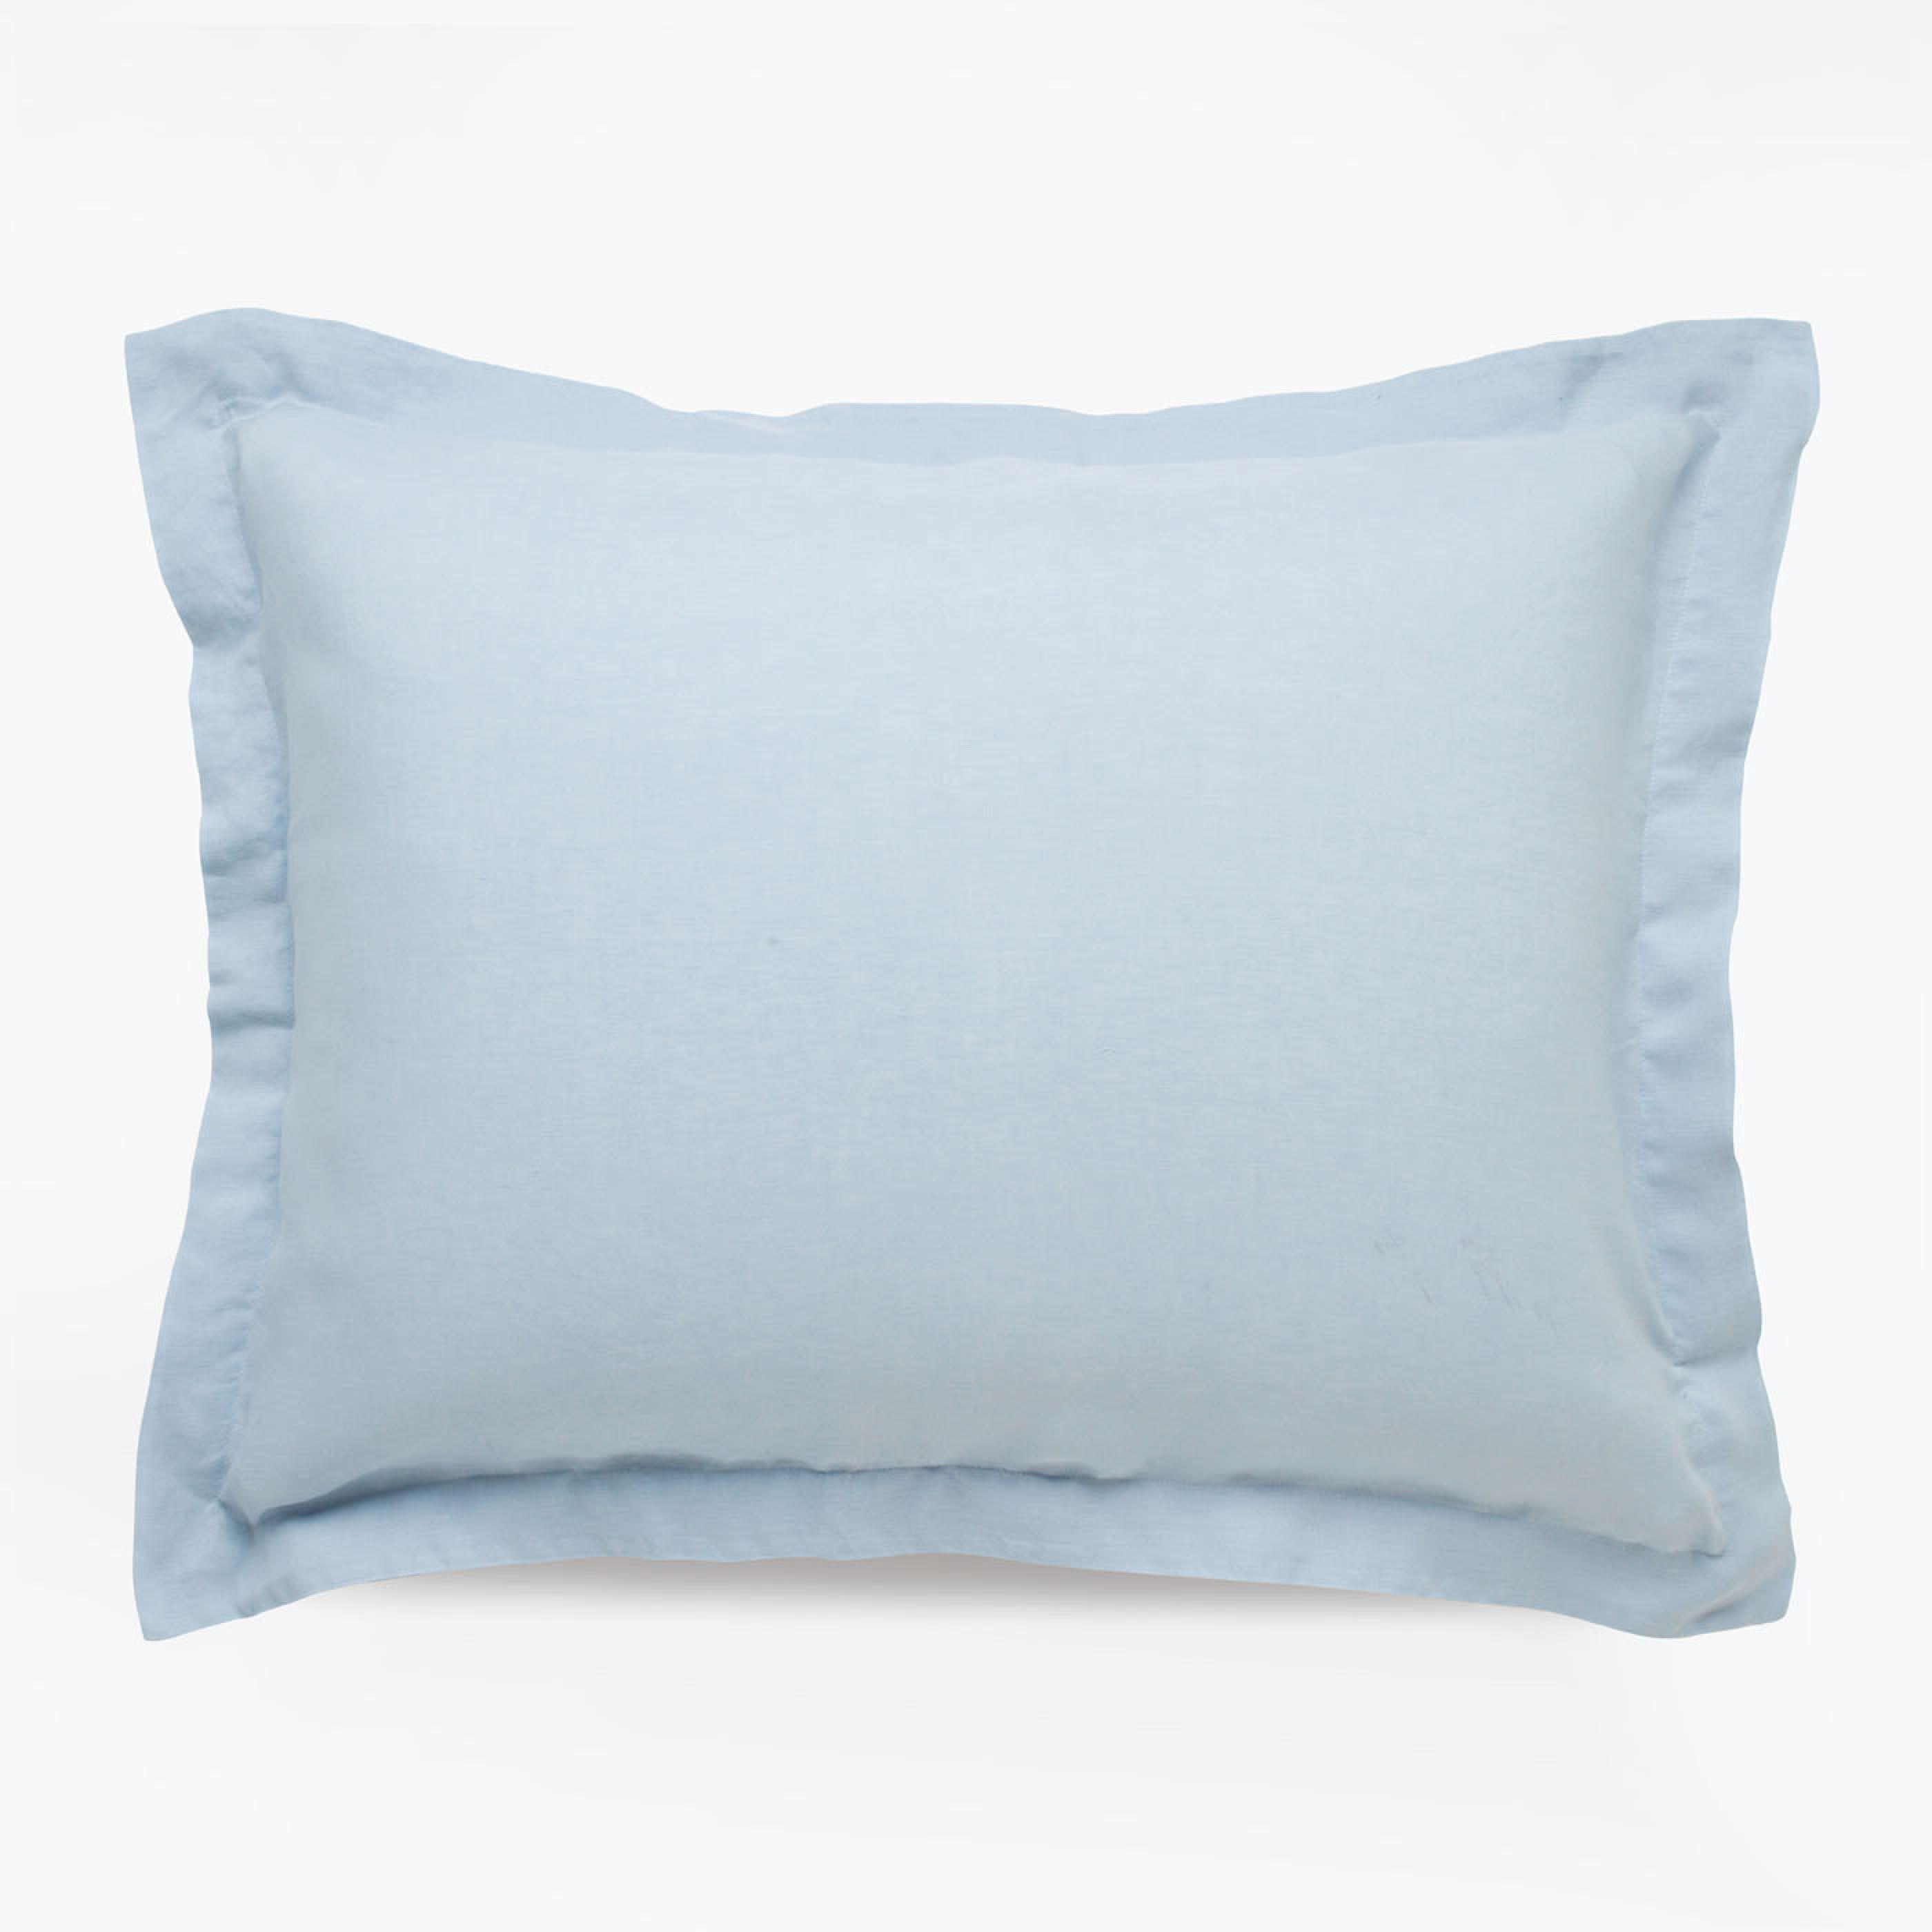 Linen Powder Blue Sham Standard Set of 2